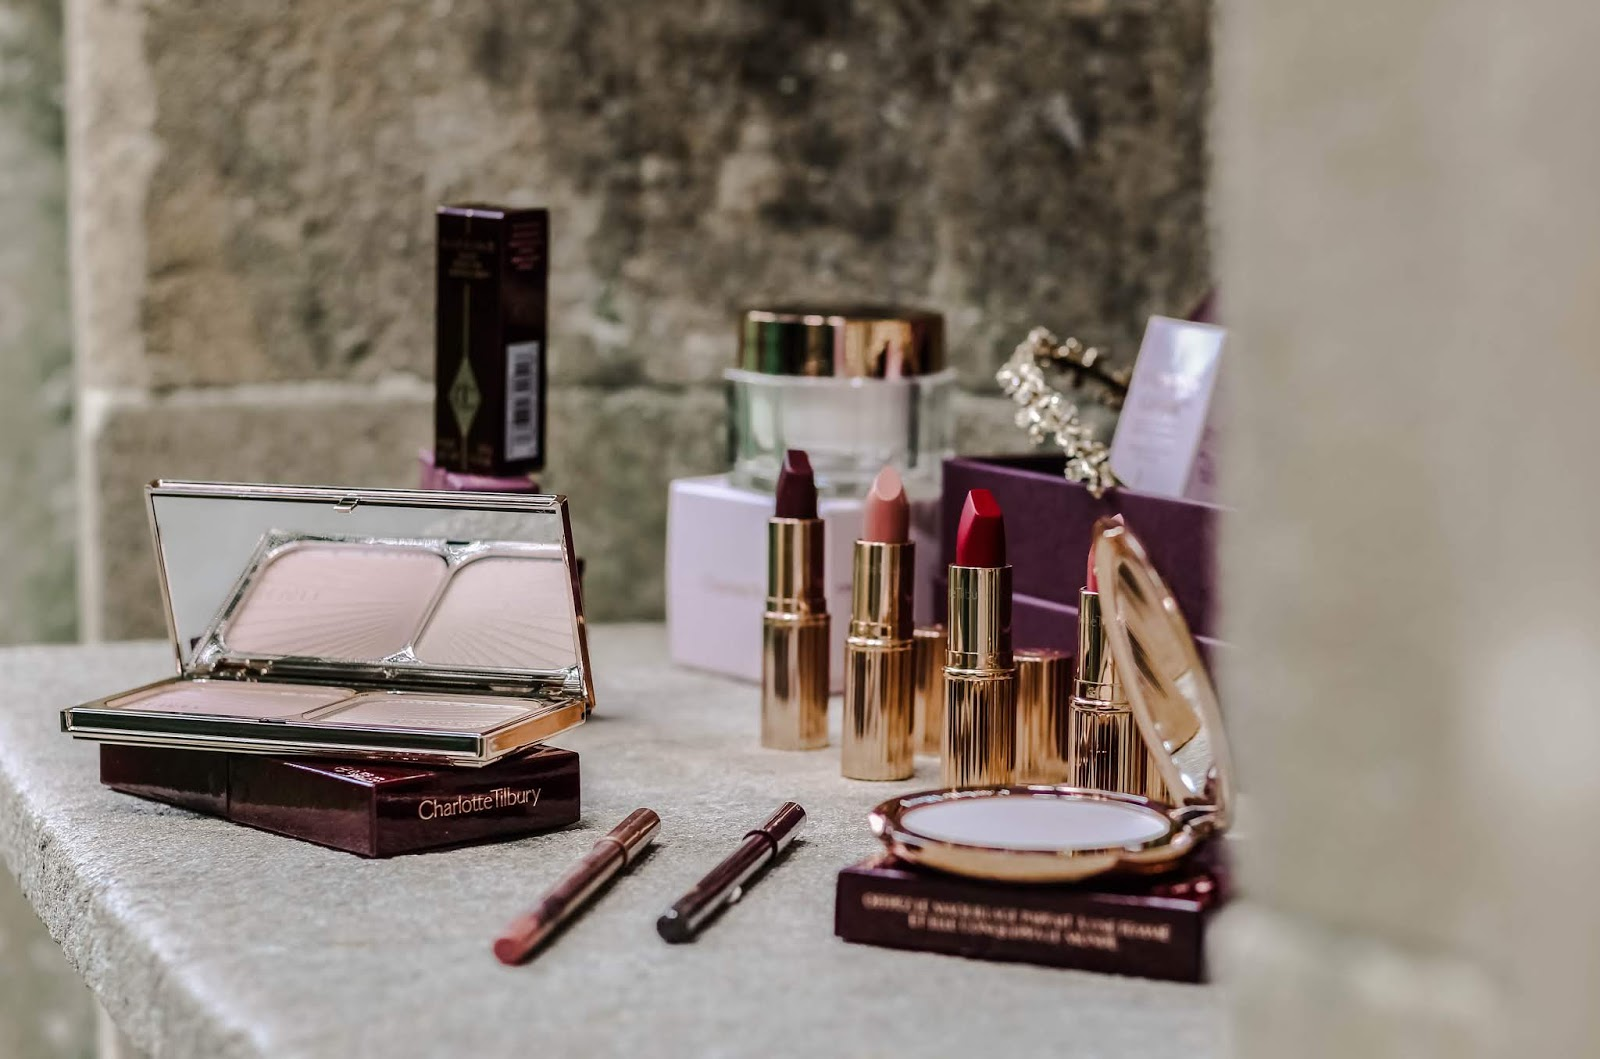 Charlotte Tilbury Beauty Blogger Haul